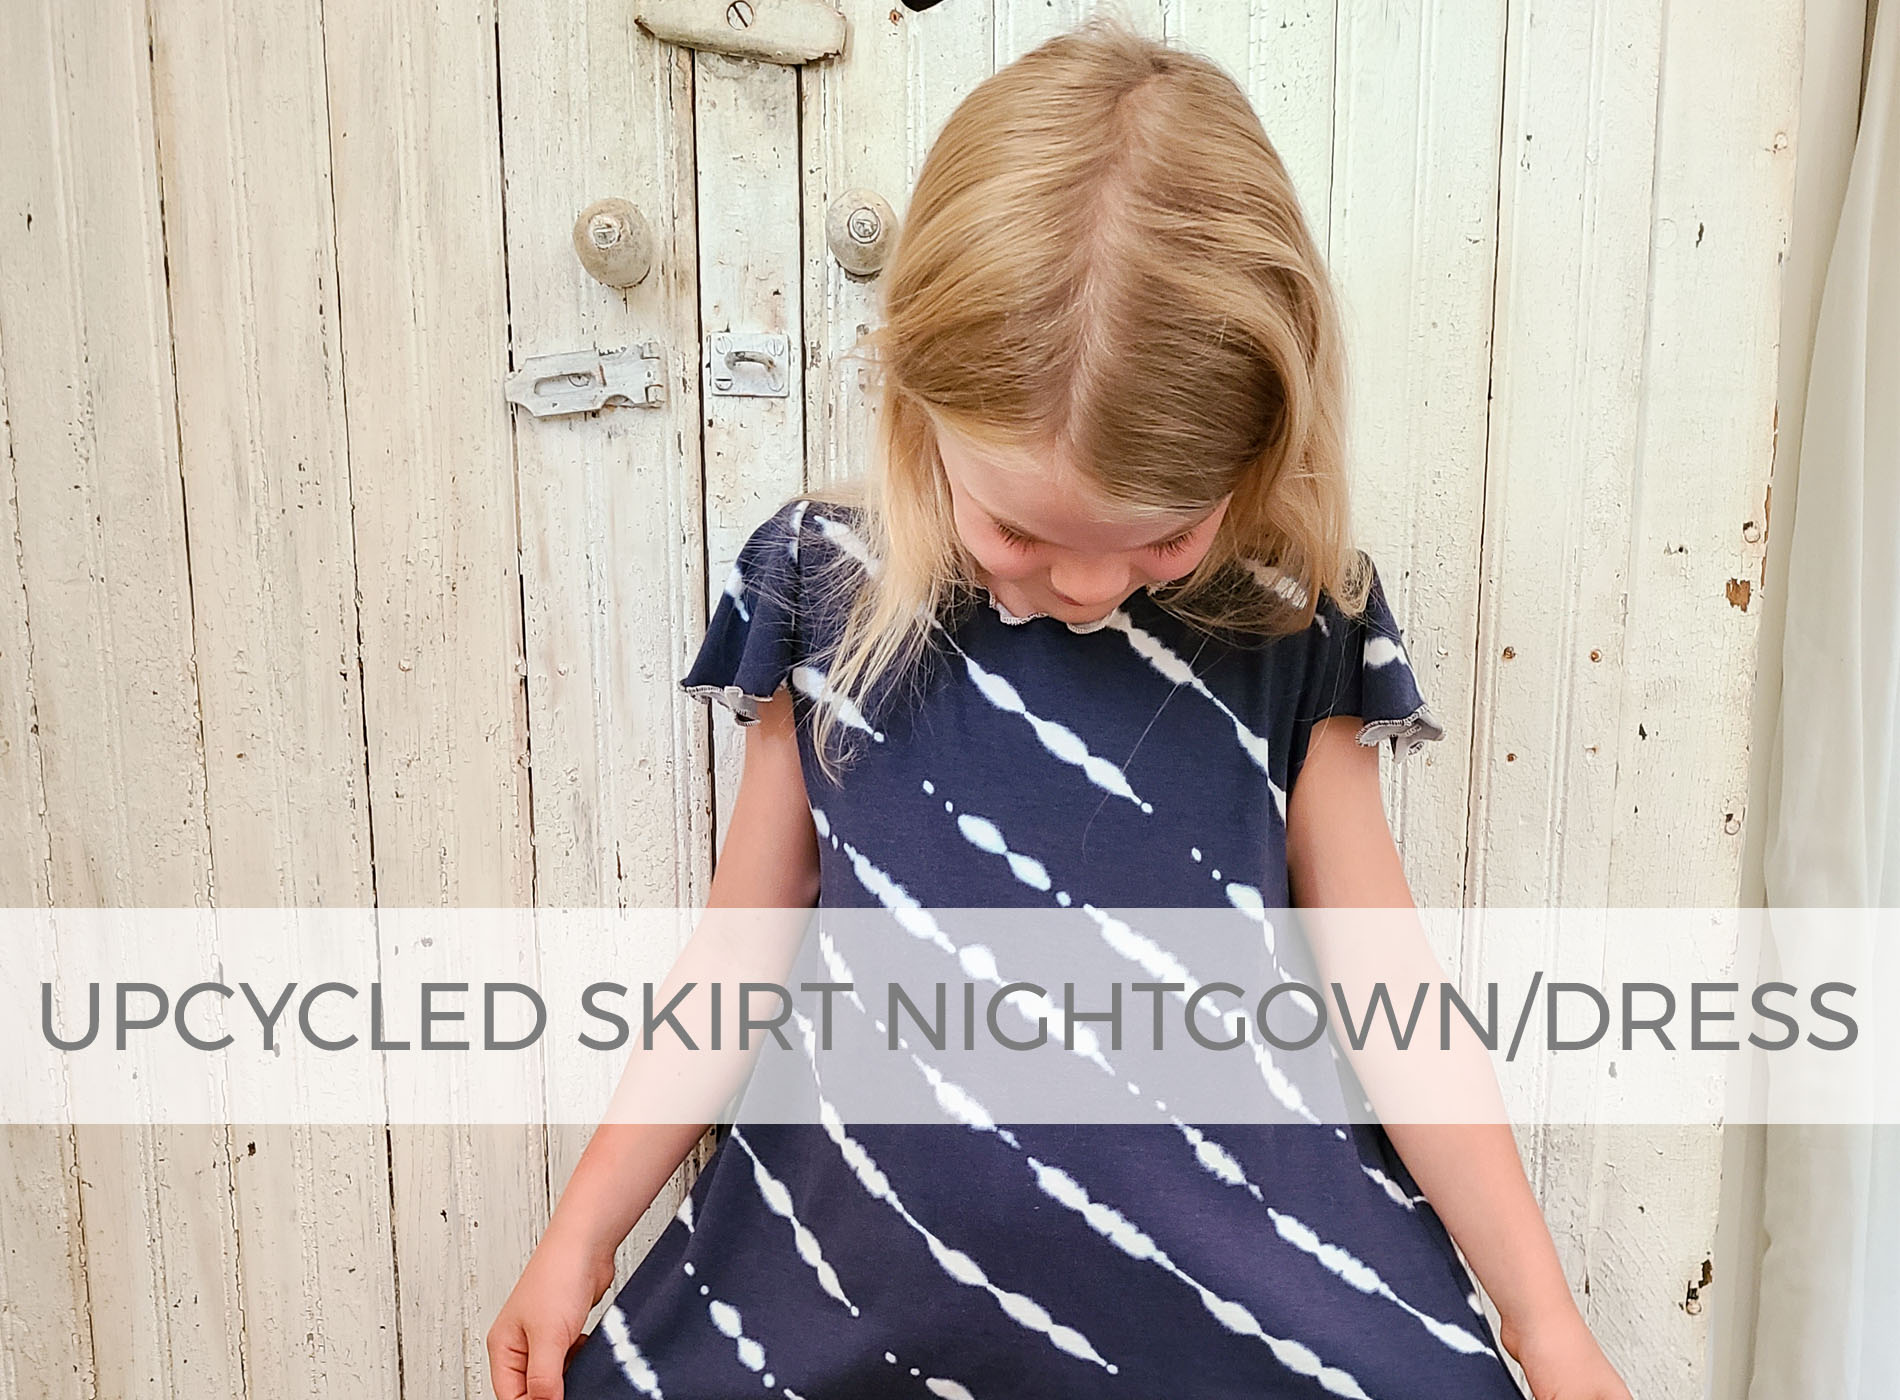 Upcycled Skirt into Nightgown & Clothes by Larissa of Prodigal Pieces | prodigalpieces.com #prodigalpieces #sewing #fashion #refashion #diy #upcycle